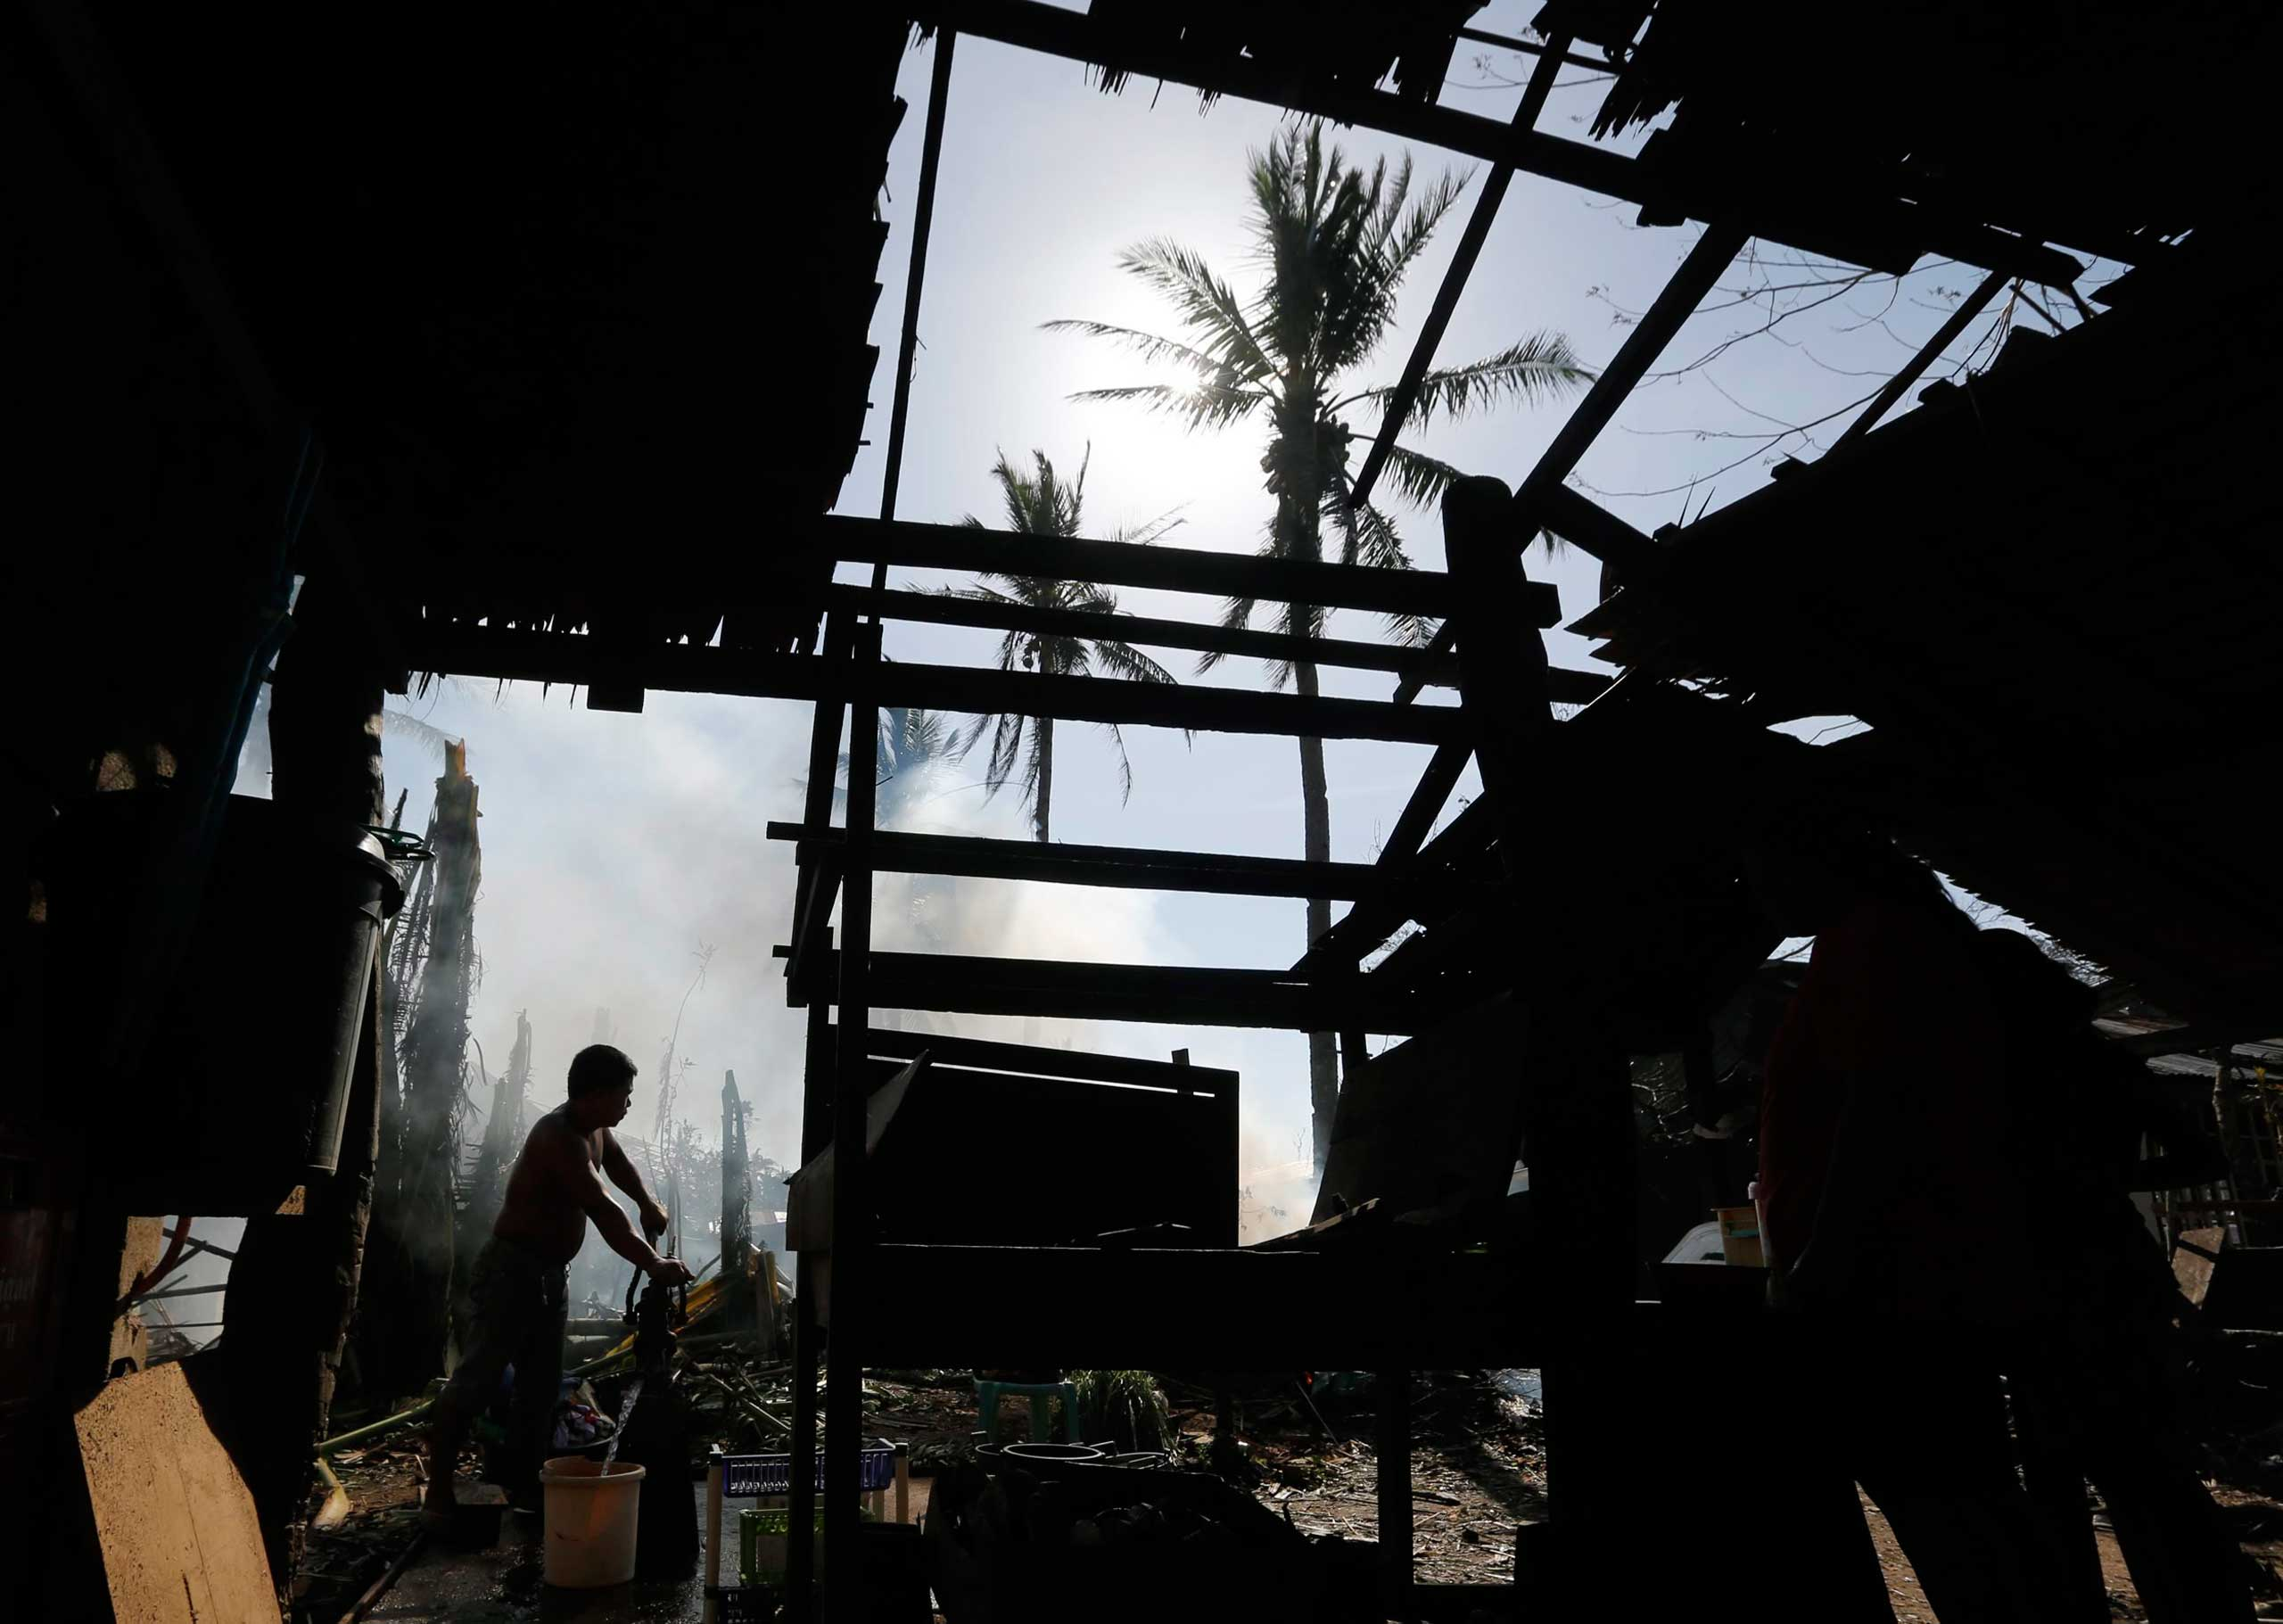 <b>Philippines Typhoon Hagupit</b> A Filipino typhoon victim collects water in front of a damaged home where Typhoon Hagupit hit, Samar Island, Philippines, on Dec. 8, 2014.